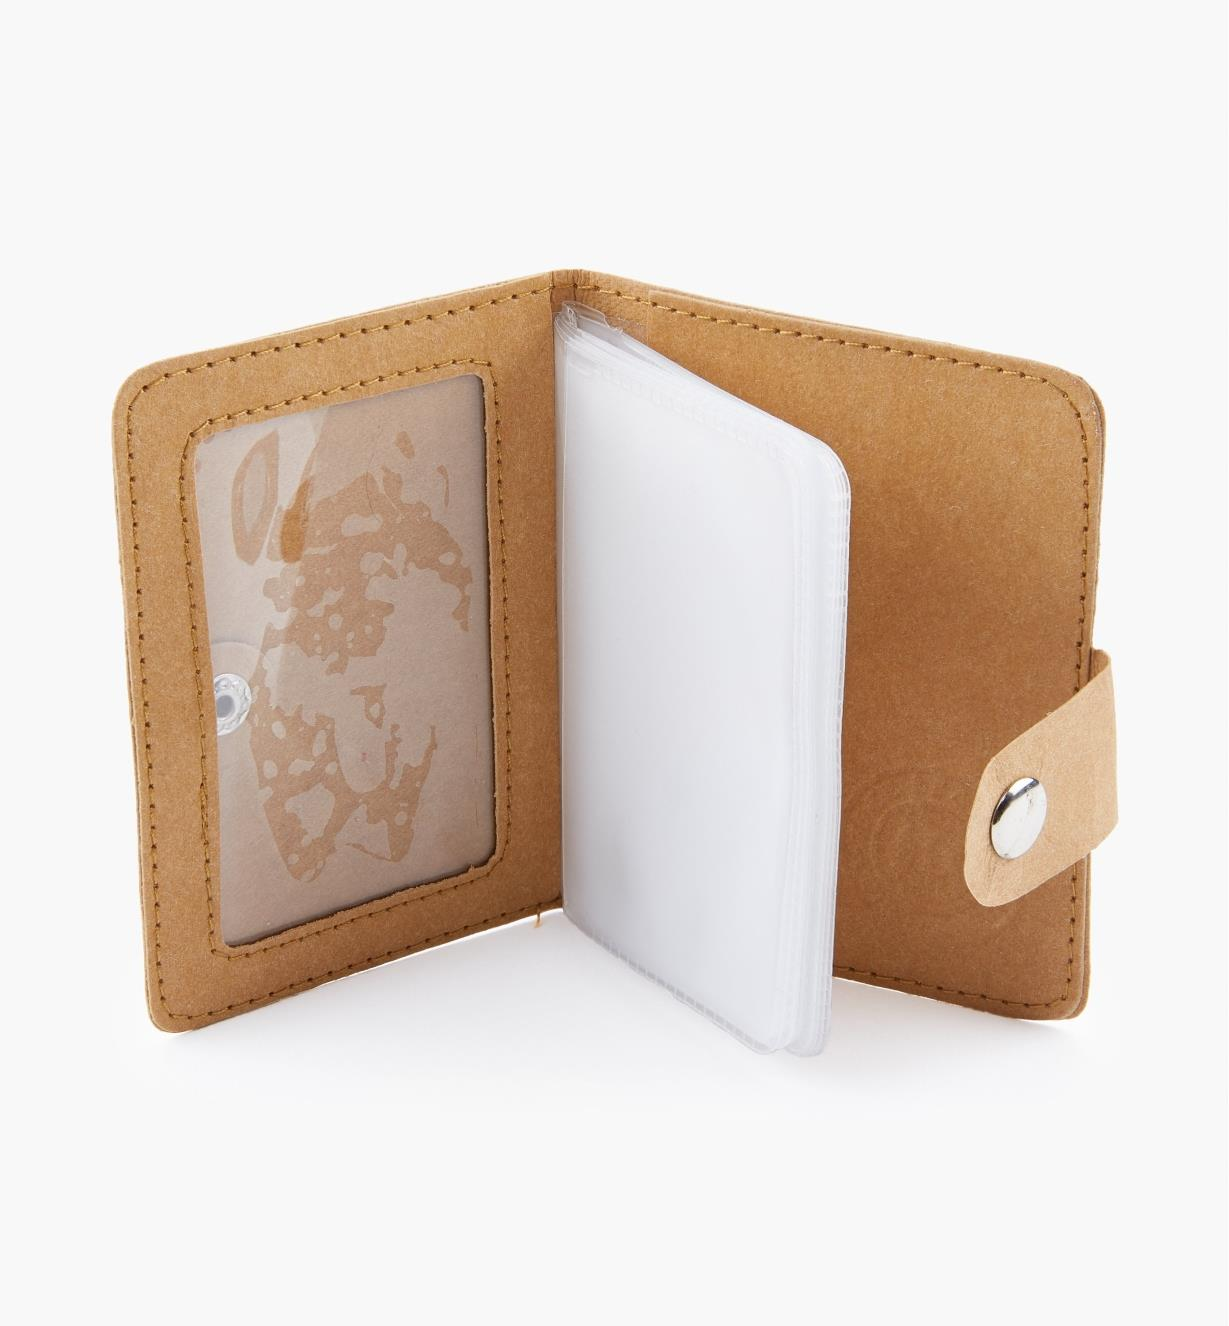 09A0937 - Porte-cartes Tree Leather